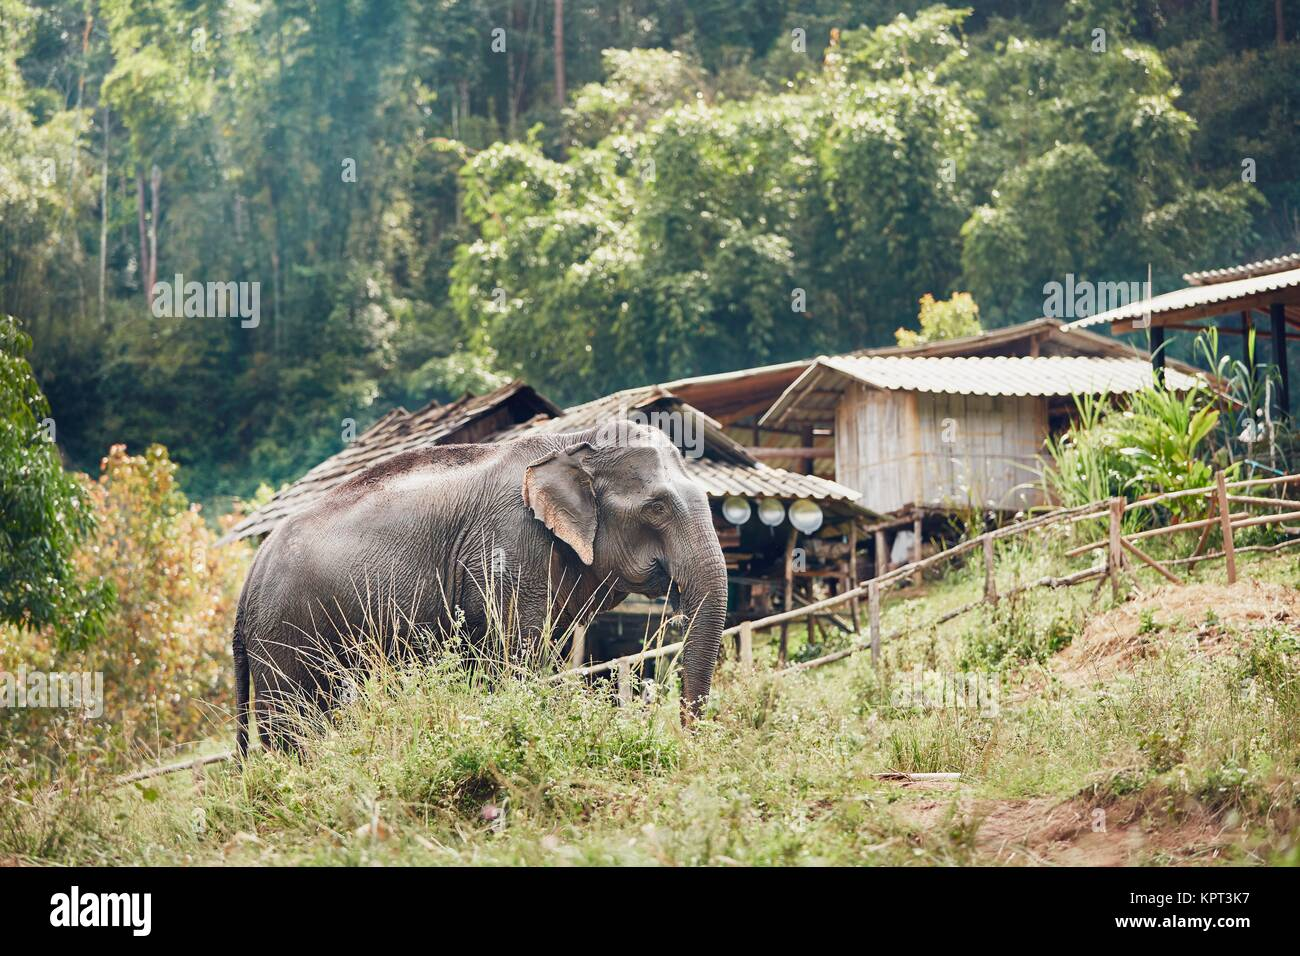 Asian elephant near small village in Chiang Mai Province, Thailand. - Stock Image